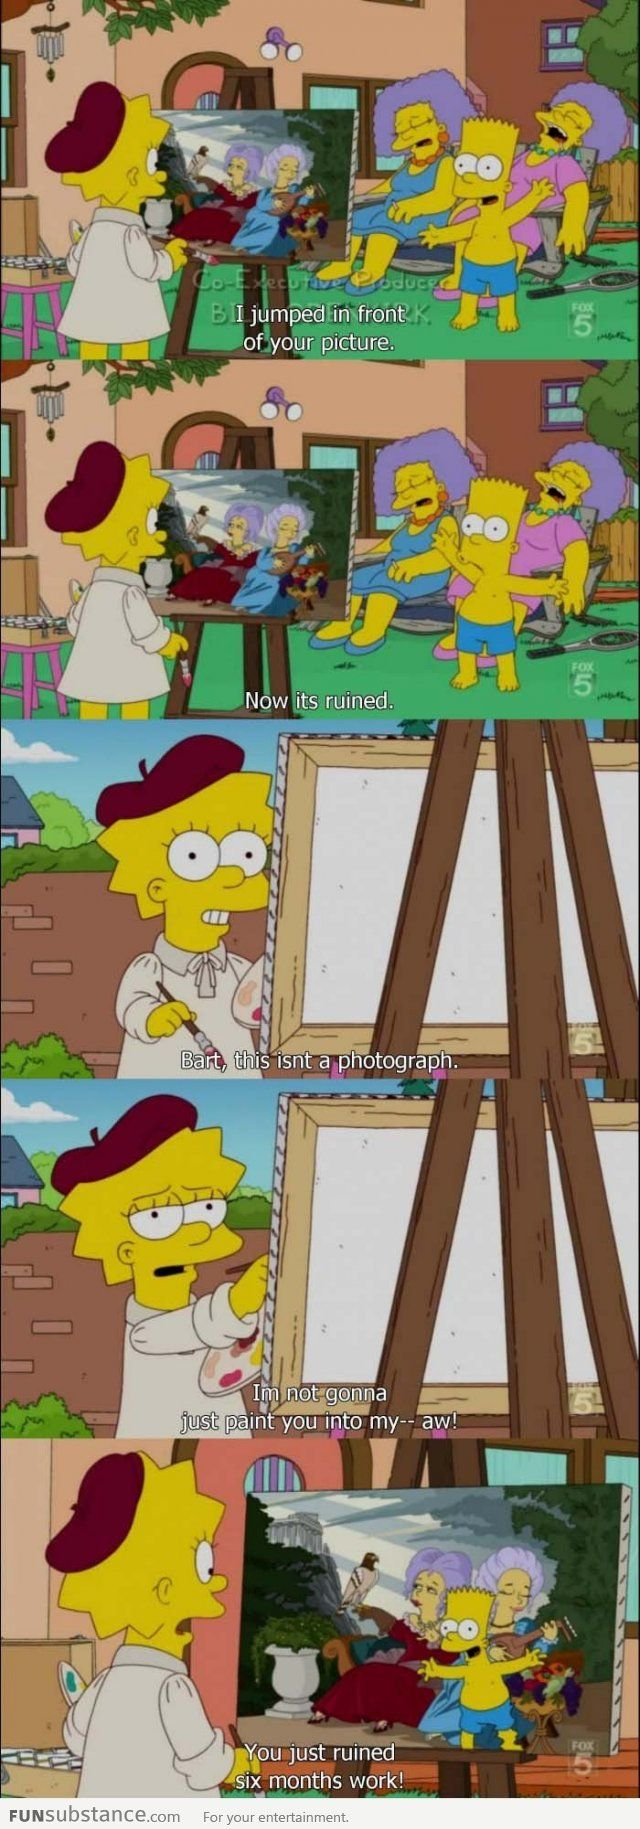 The Simpsons Logic